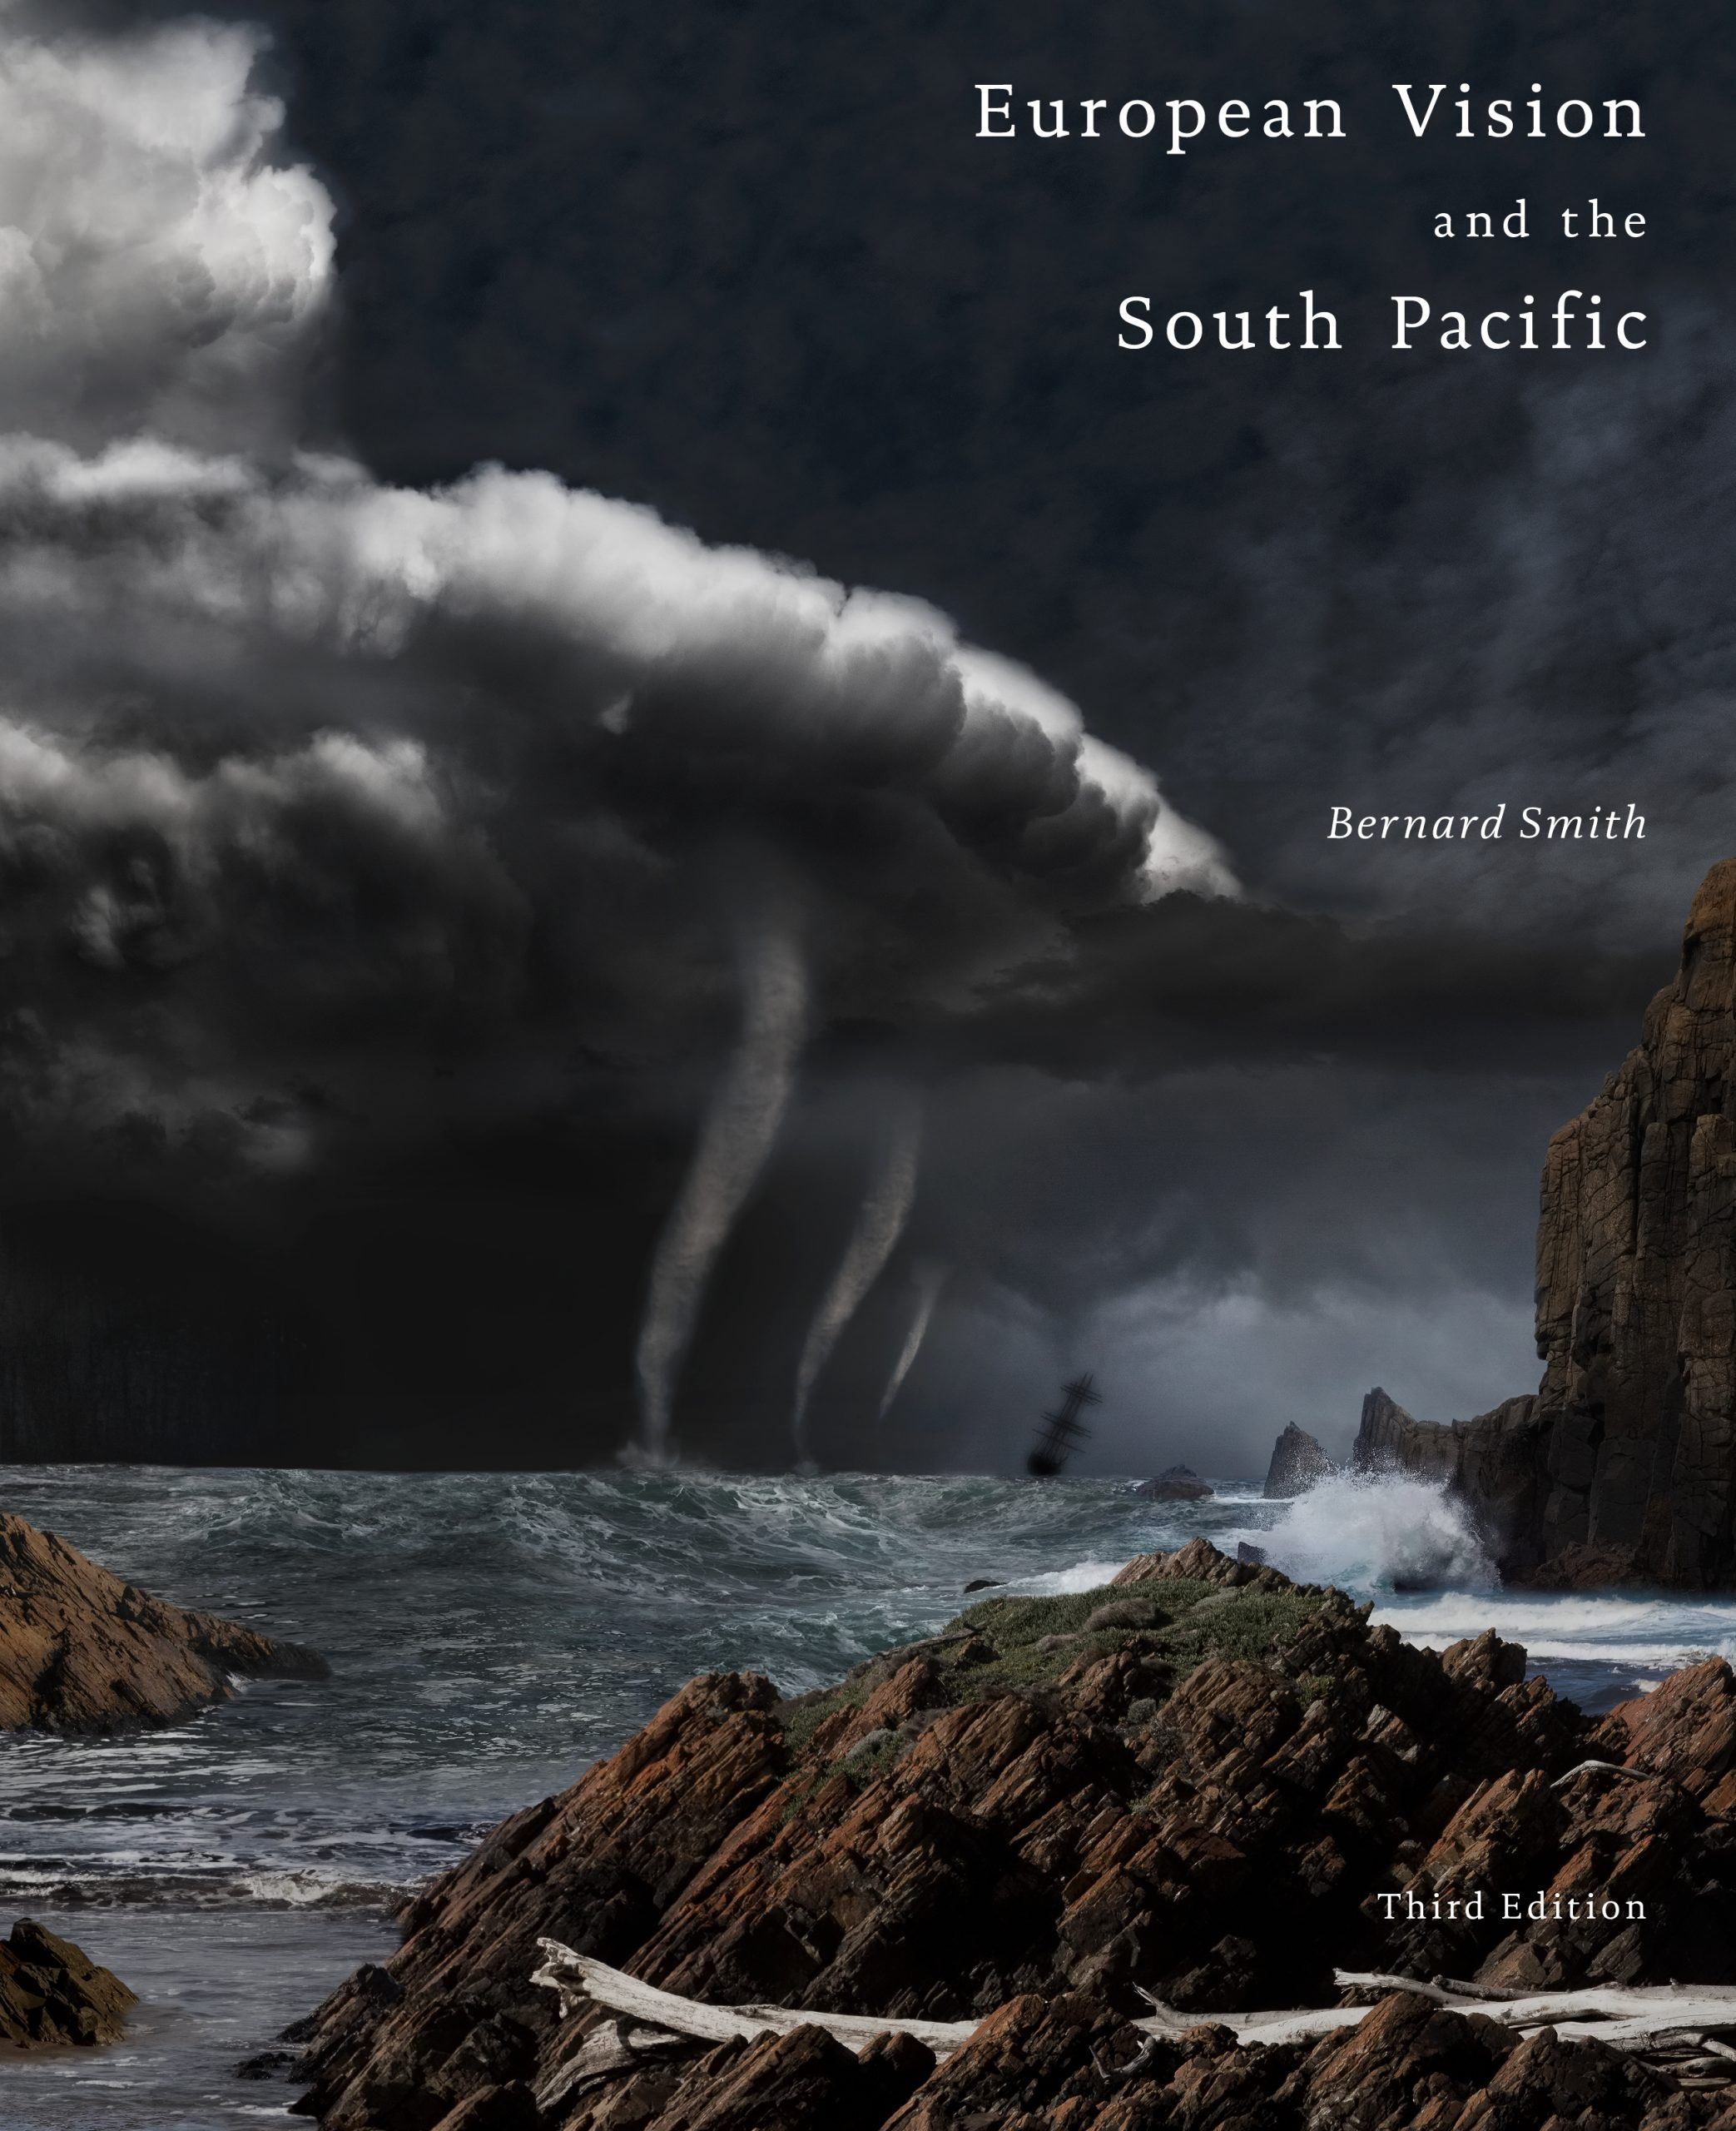 European Vision and the South Pacific